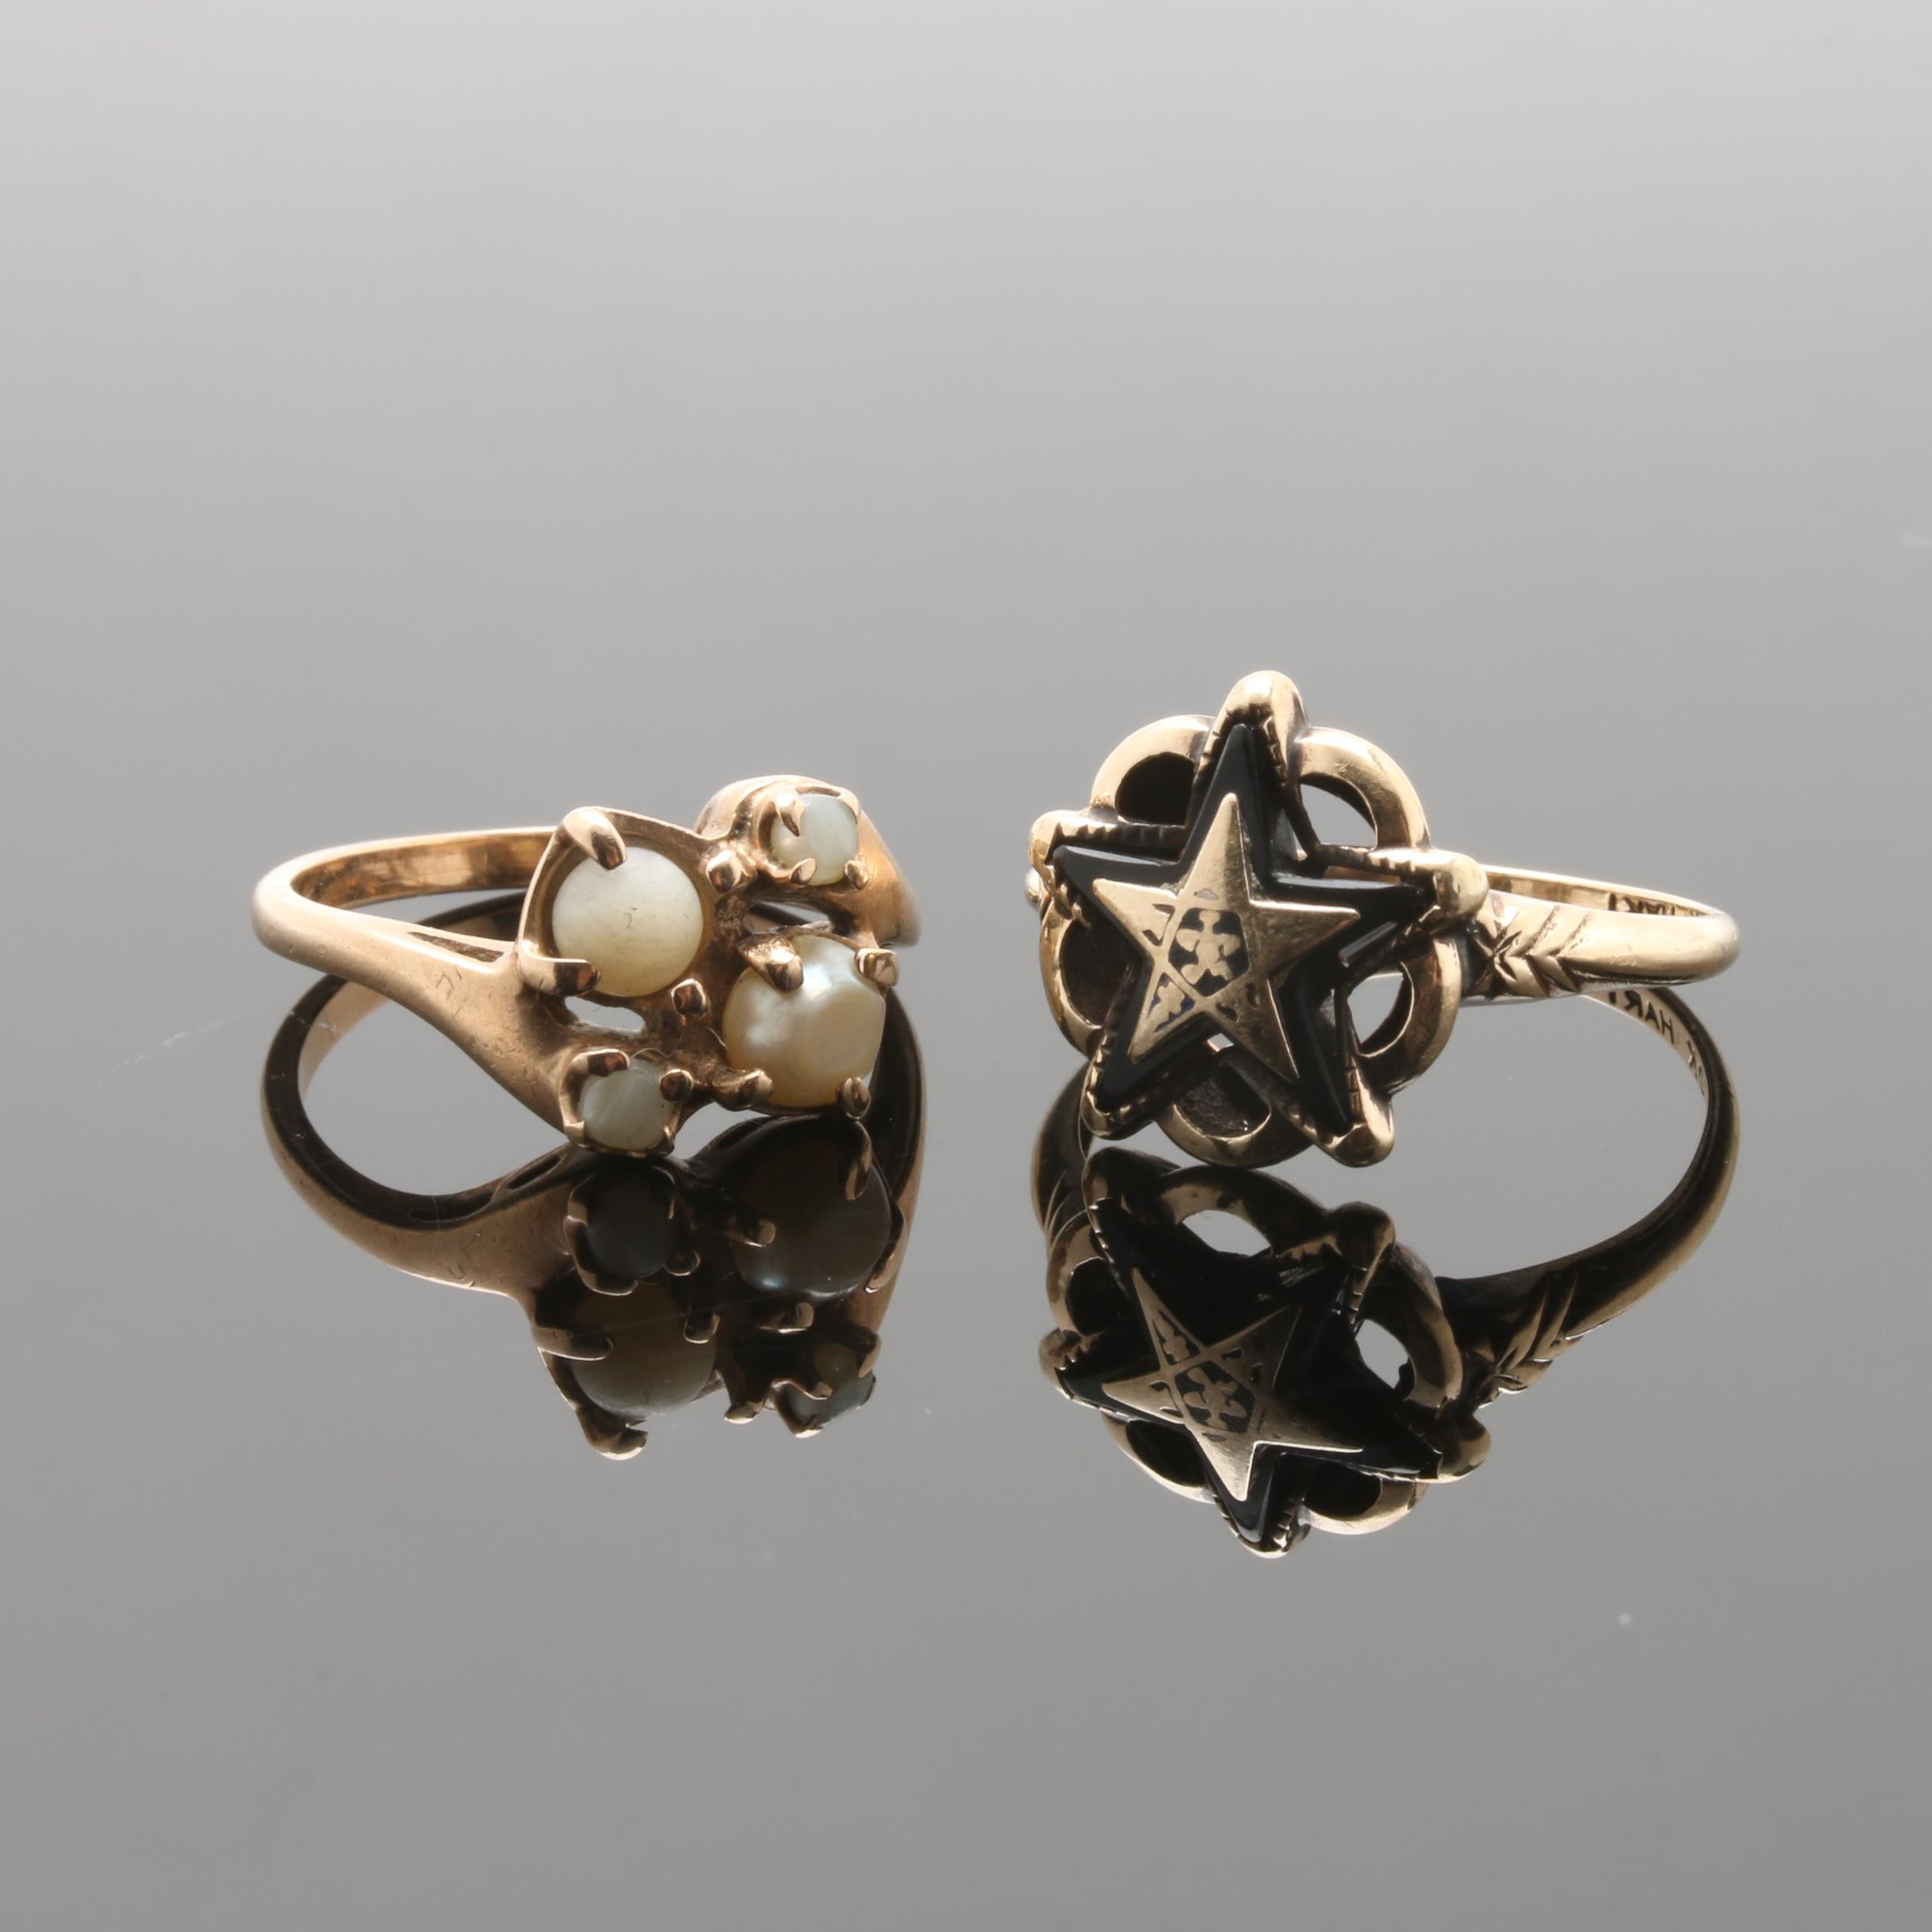 10K Yellow Gold Eastern Star Black Onyx Ring and Cultured Pearl Ring